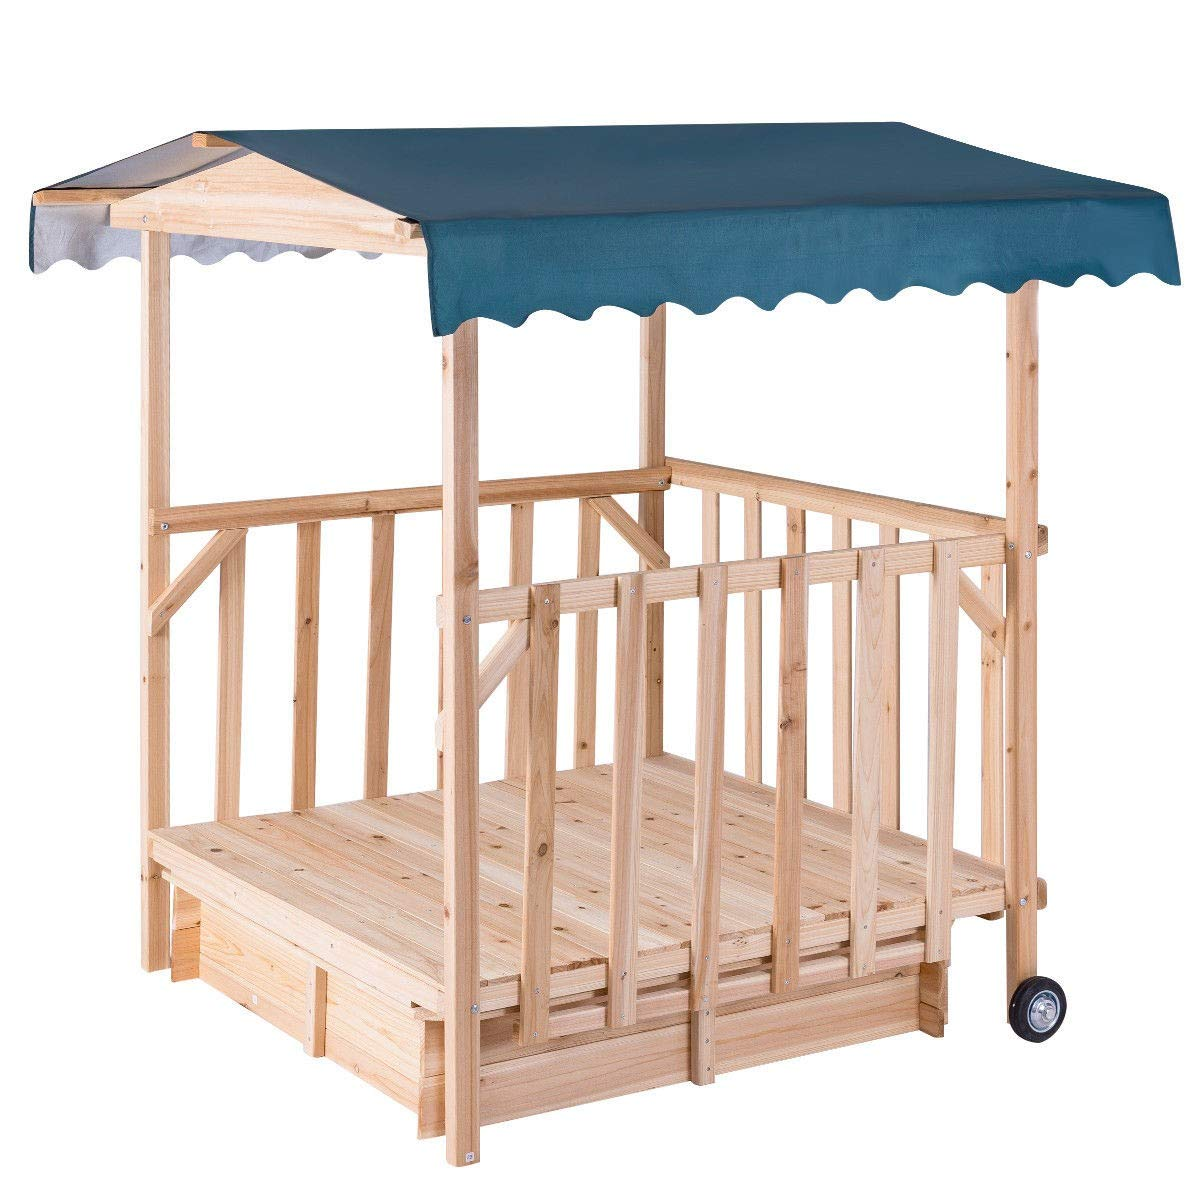 EnjoyShop Outdoor Children Retractable Beach Cabana Sandbox with Canopy Suitable for 1 or 2 Children